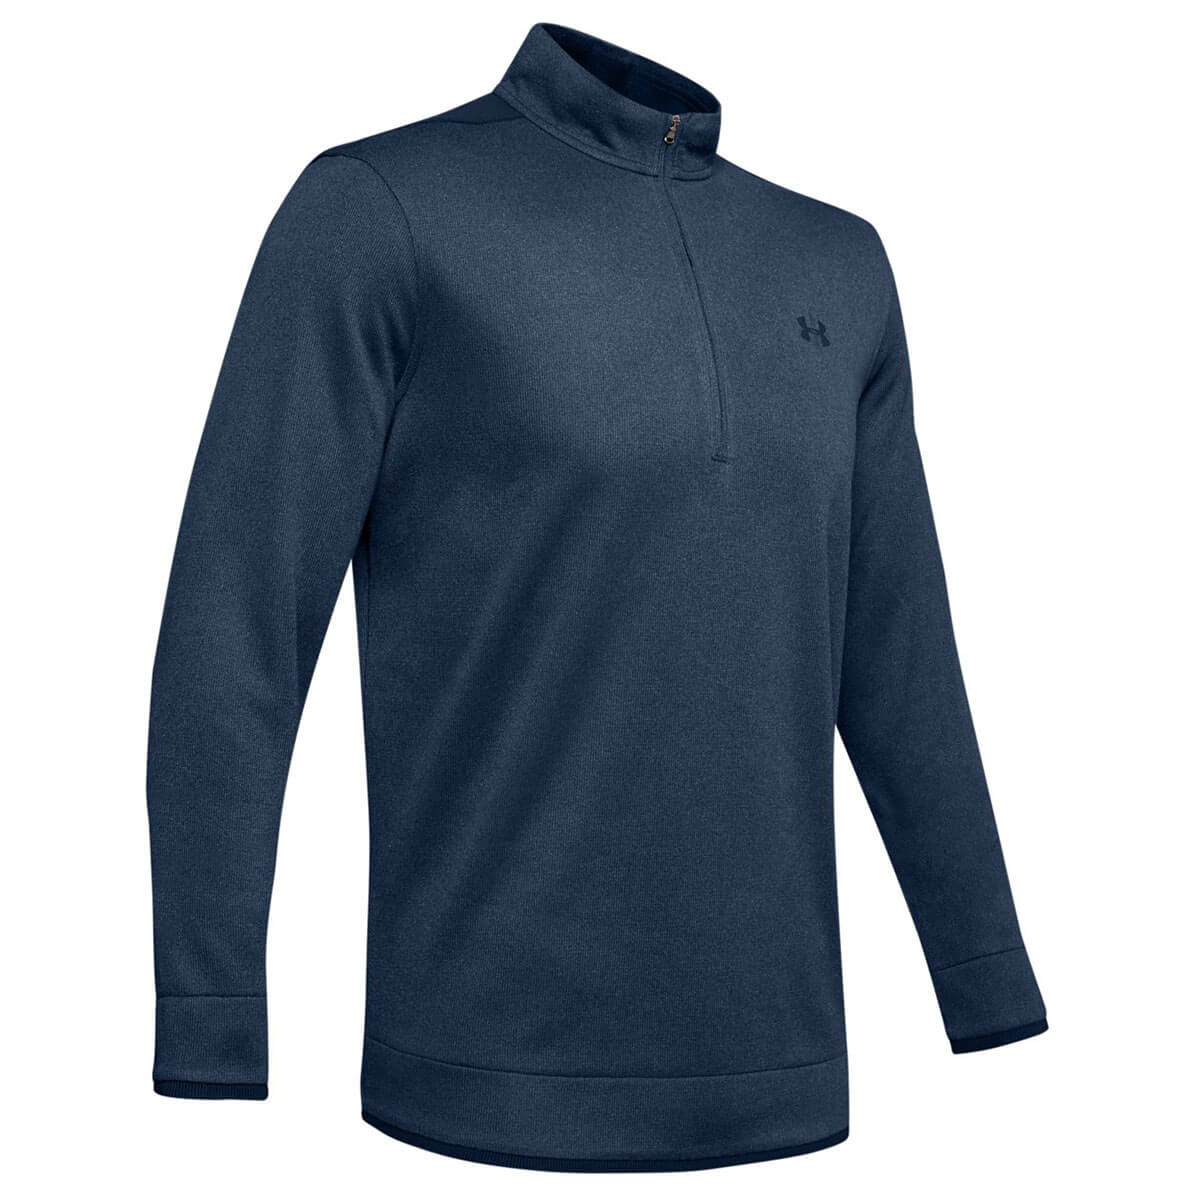 Under-Armour-Homme-UA-sweaterfleece-1-2-zip-resistant-a-l-039-eau-Pullover-40-OFF-RRP miniature 7